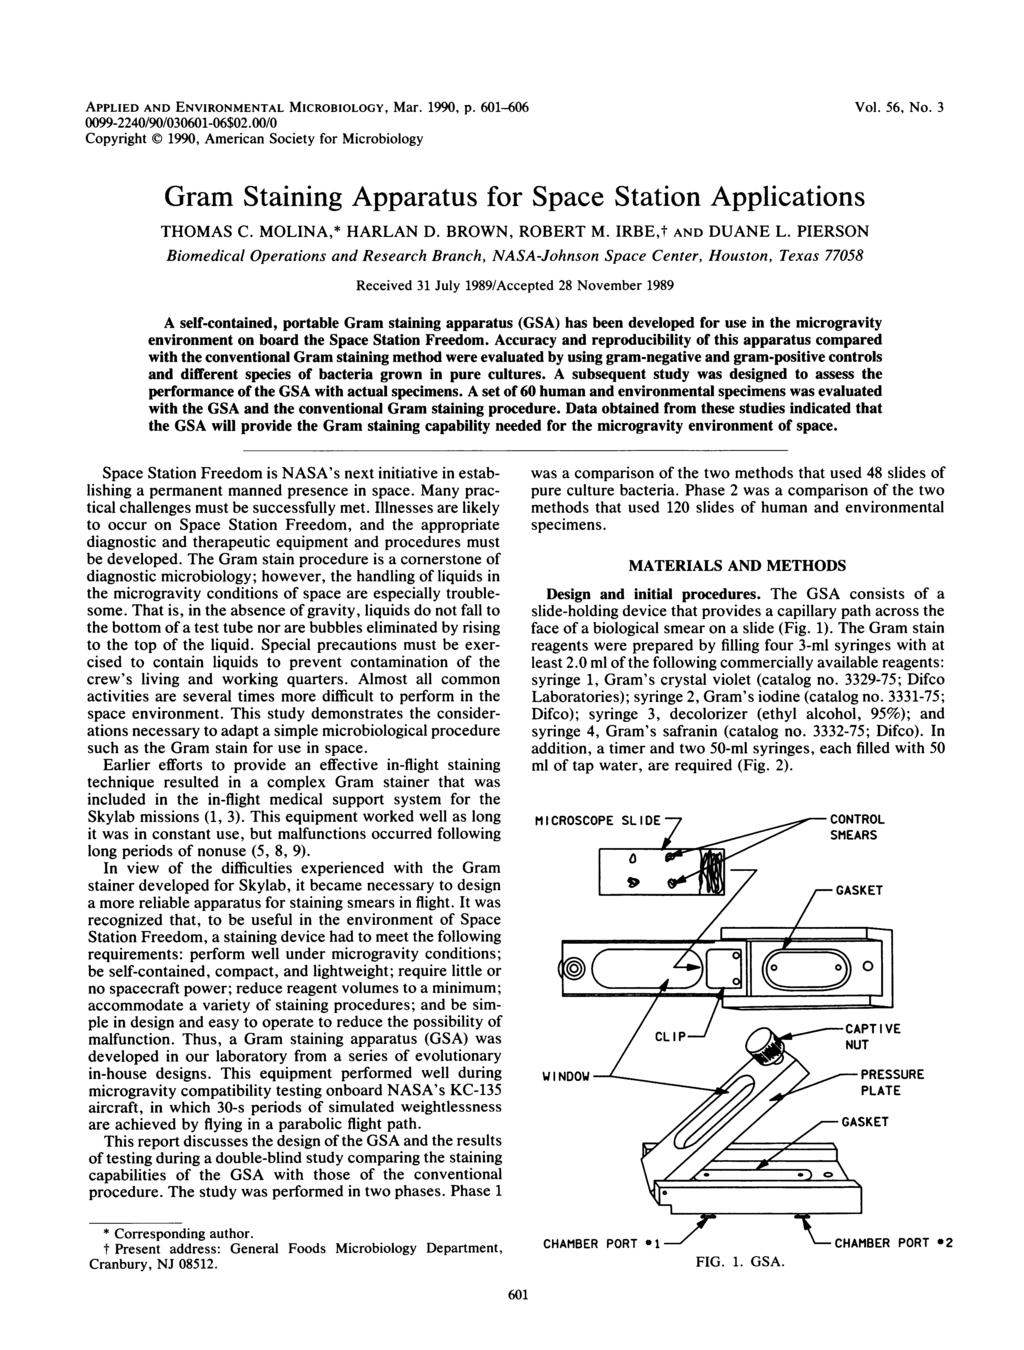 APPLIED AND ENVIRONMENTAL MICROBIOLOGY, Mar., p. - -//-$./ Copyright, American Society for Microbiology Vol., No. Gram Staining Apparatus for Space Station Applications THOMAS C. MOLINA,* HARLAN D.